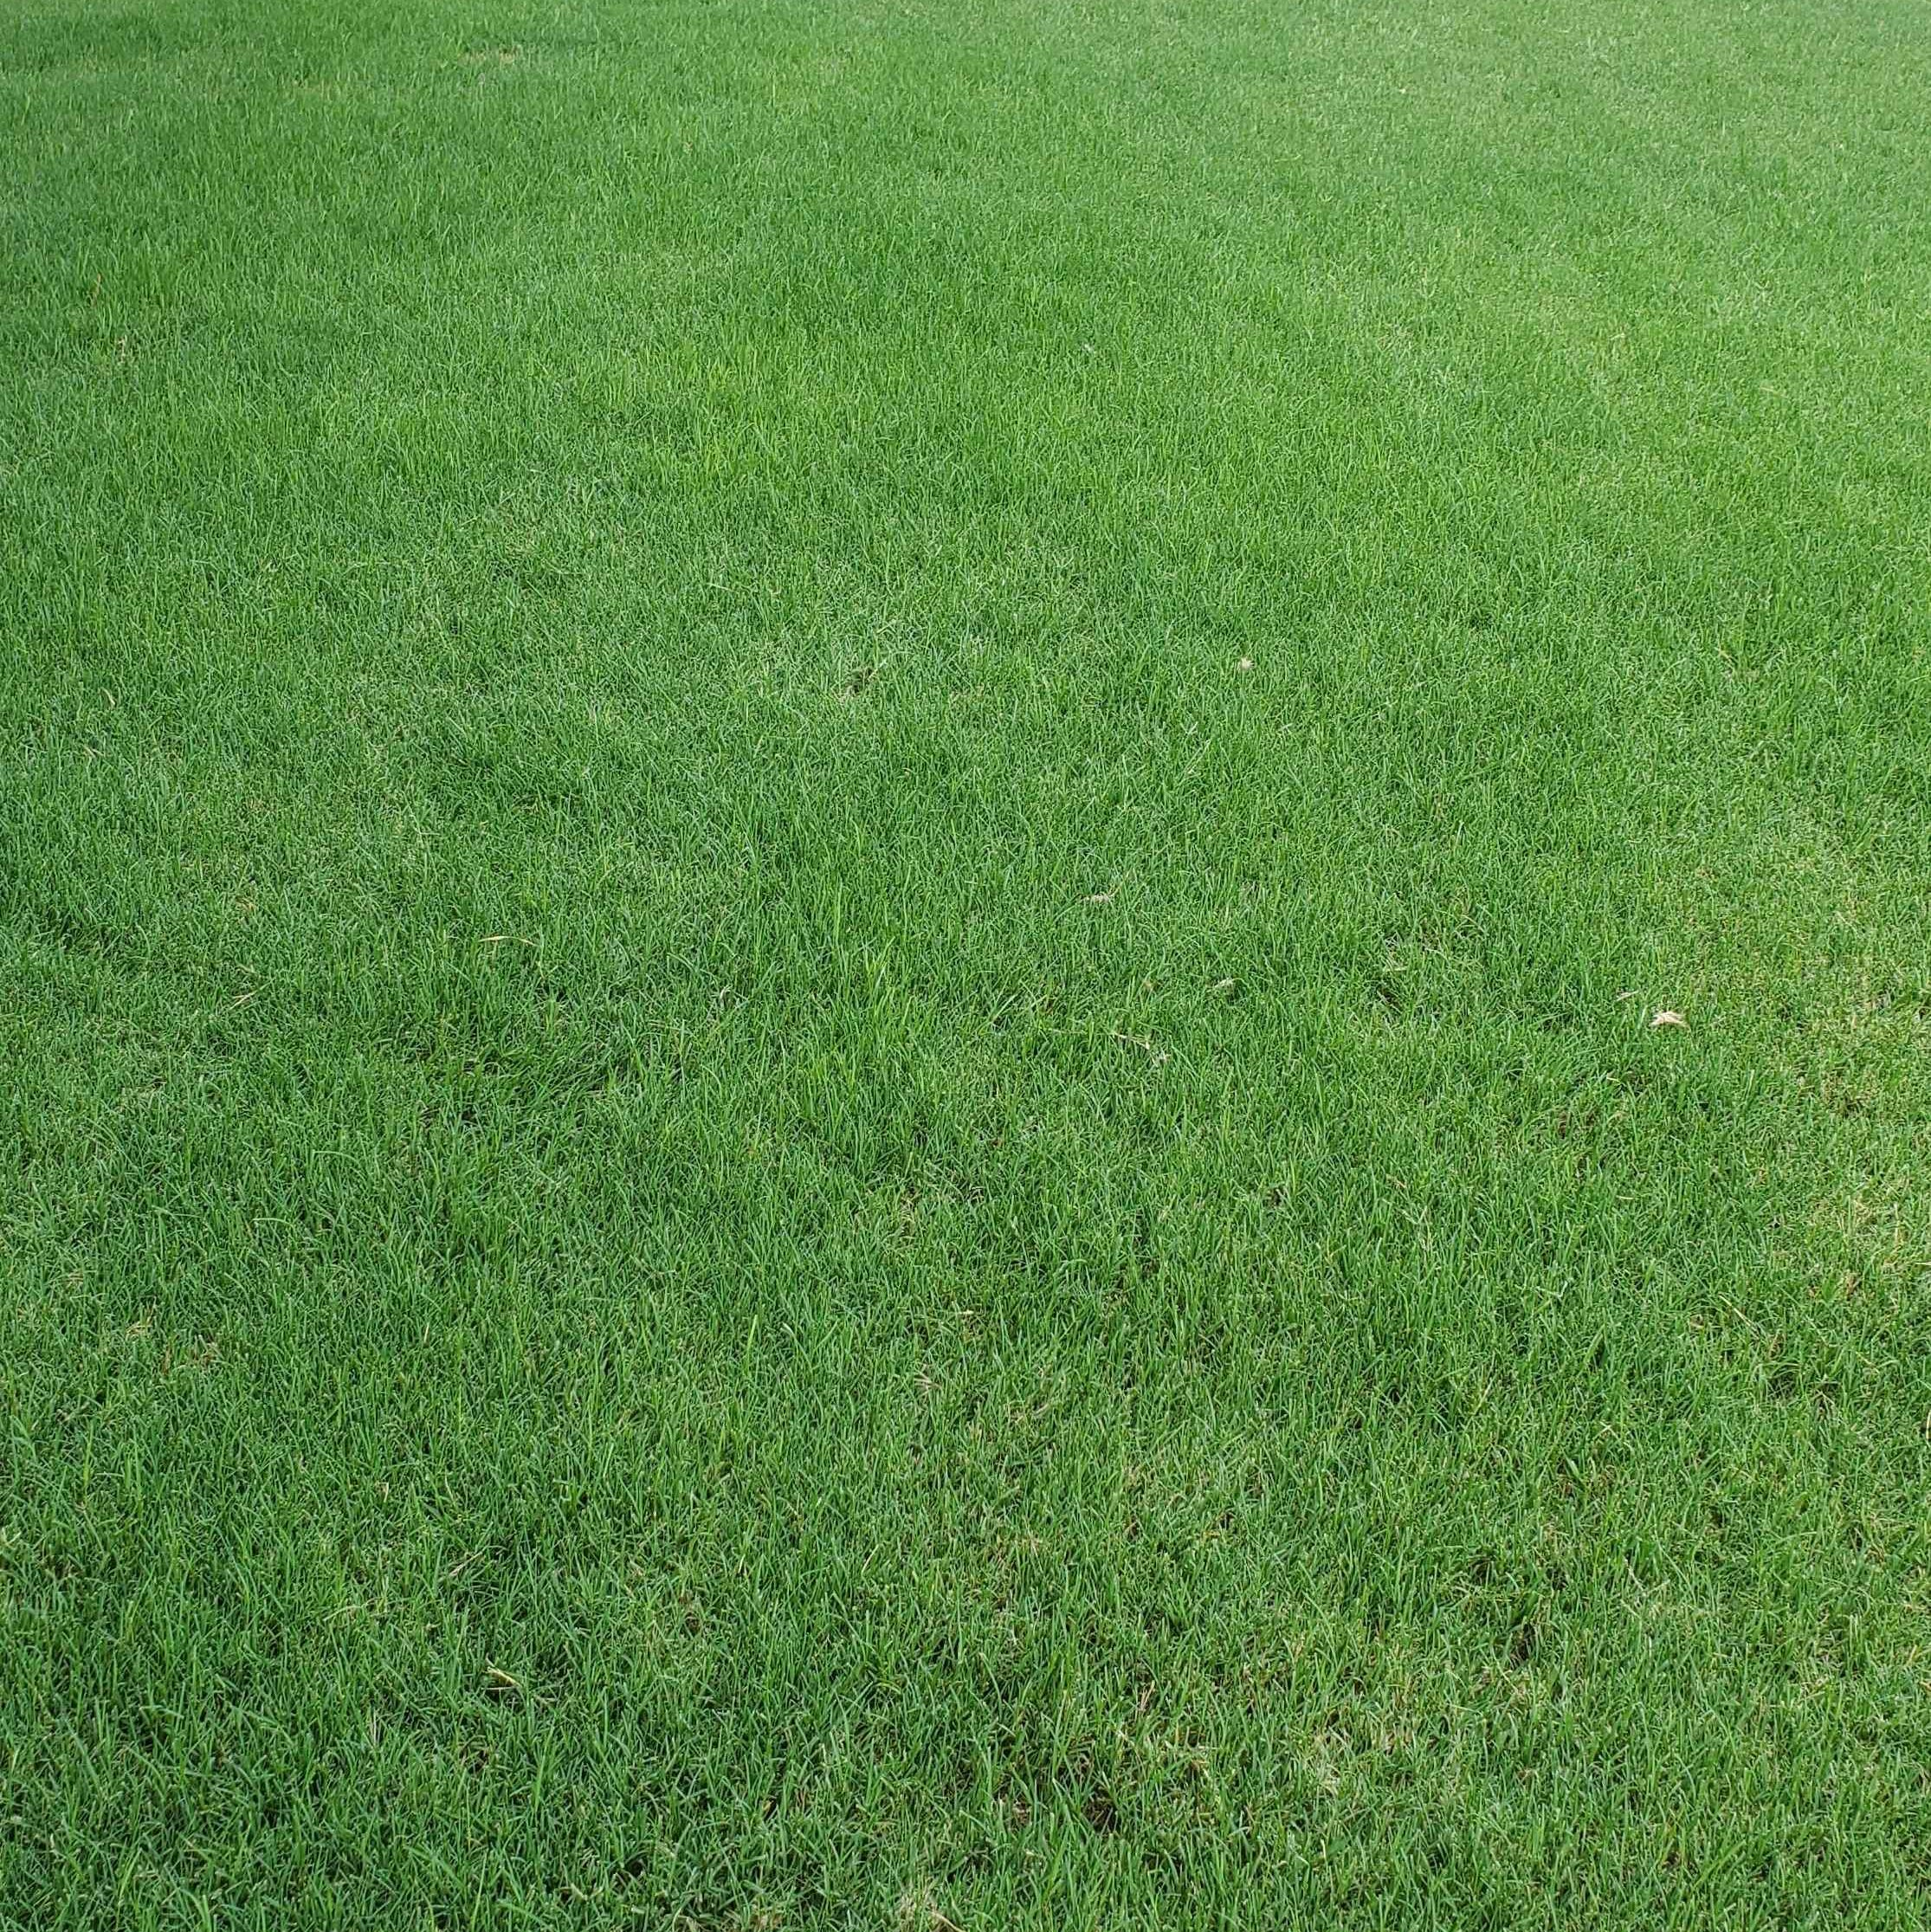 Do I really need to aerate my lawn?